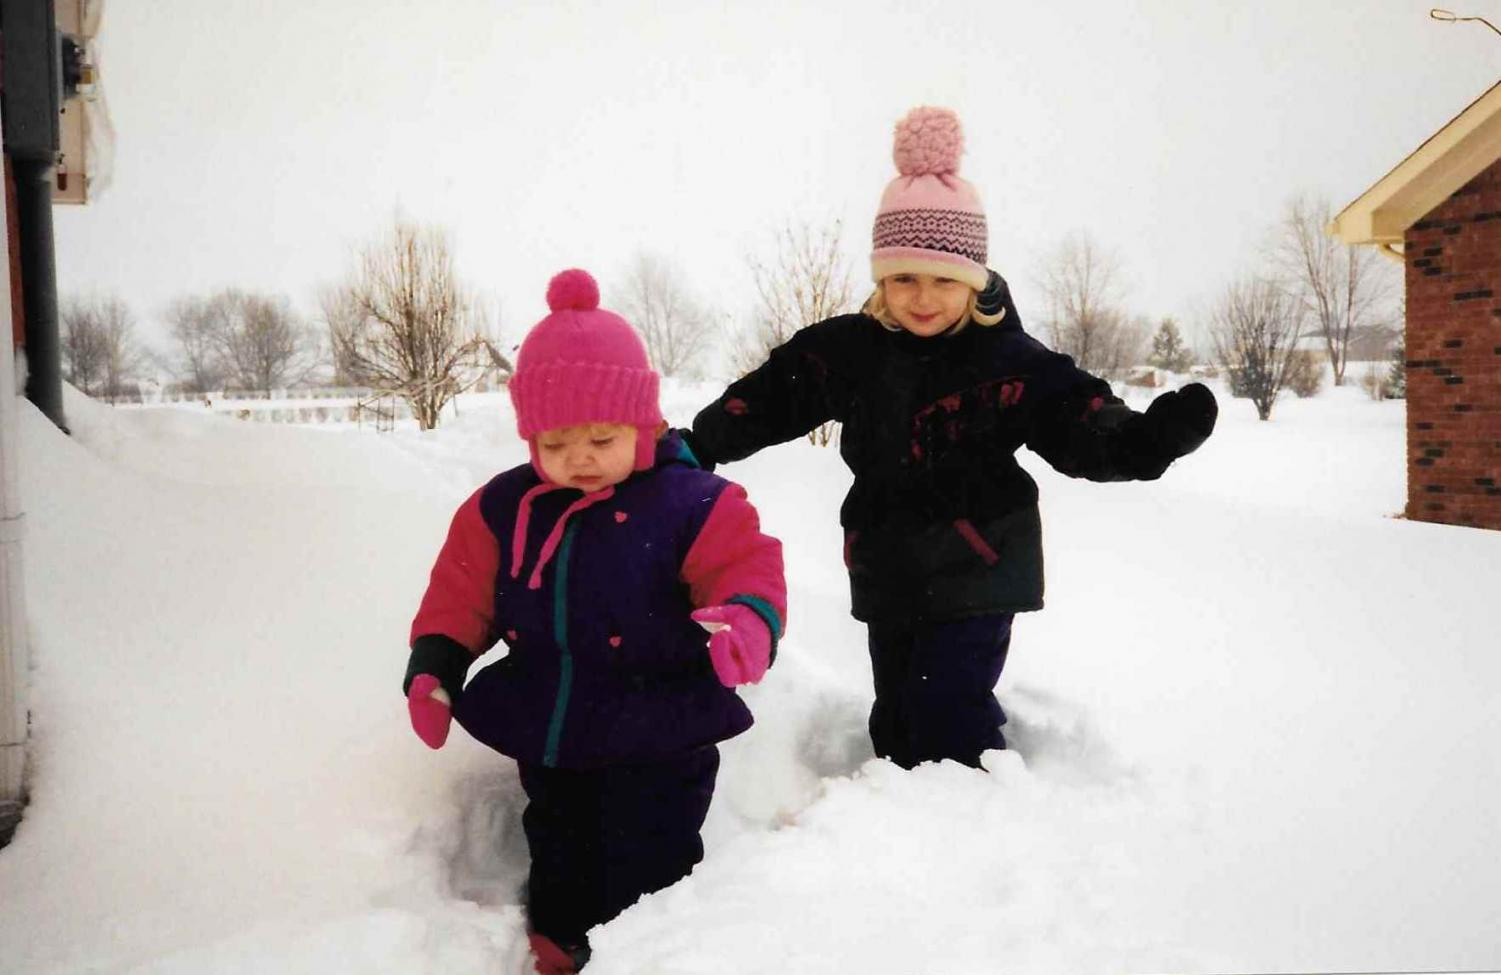 The Northerner's Editor-in-Chief as a kid, running through snow in suburbia.